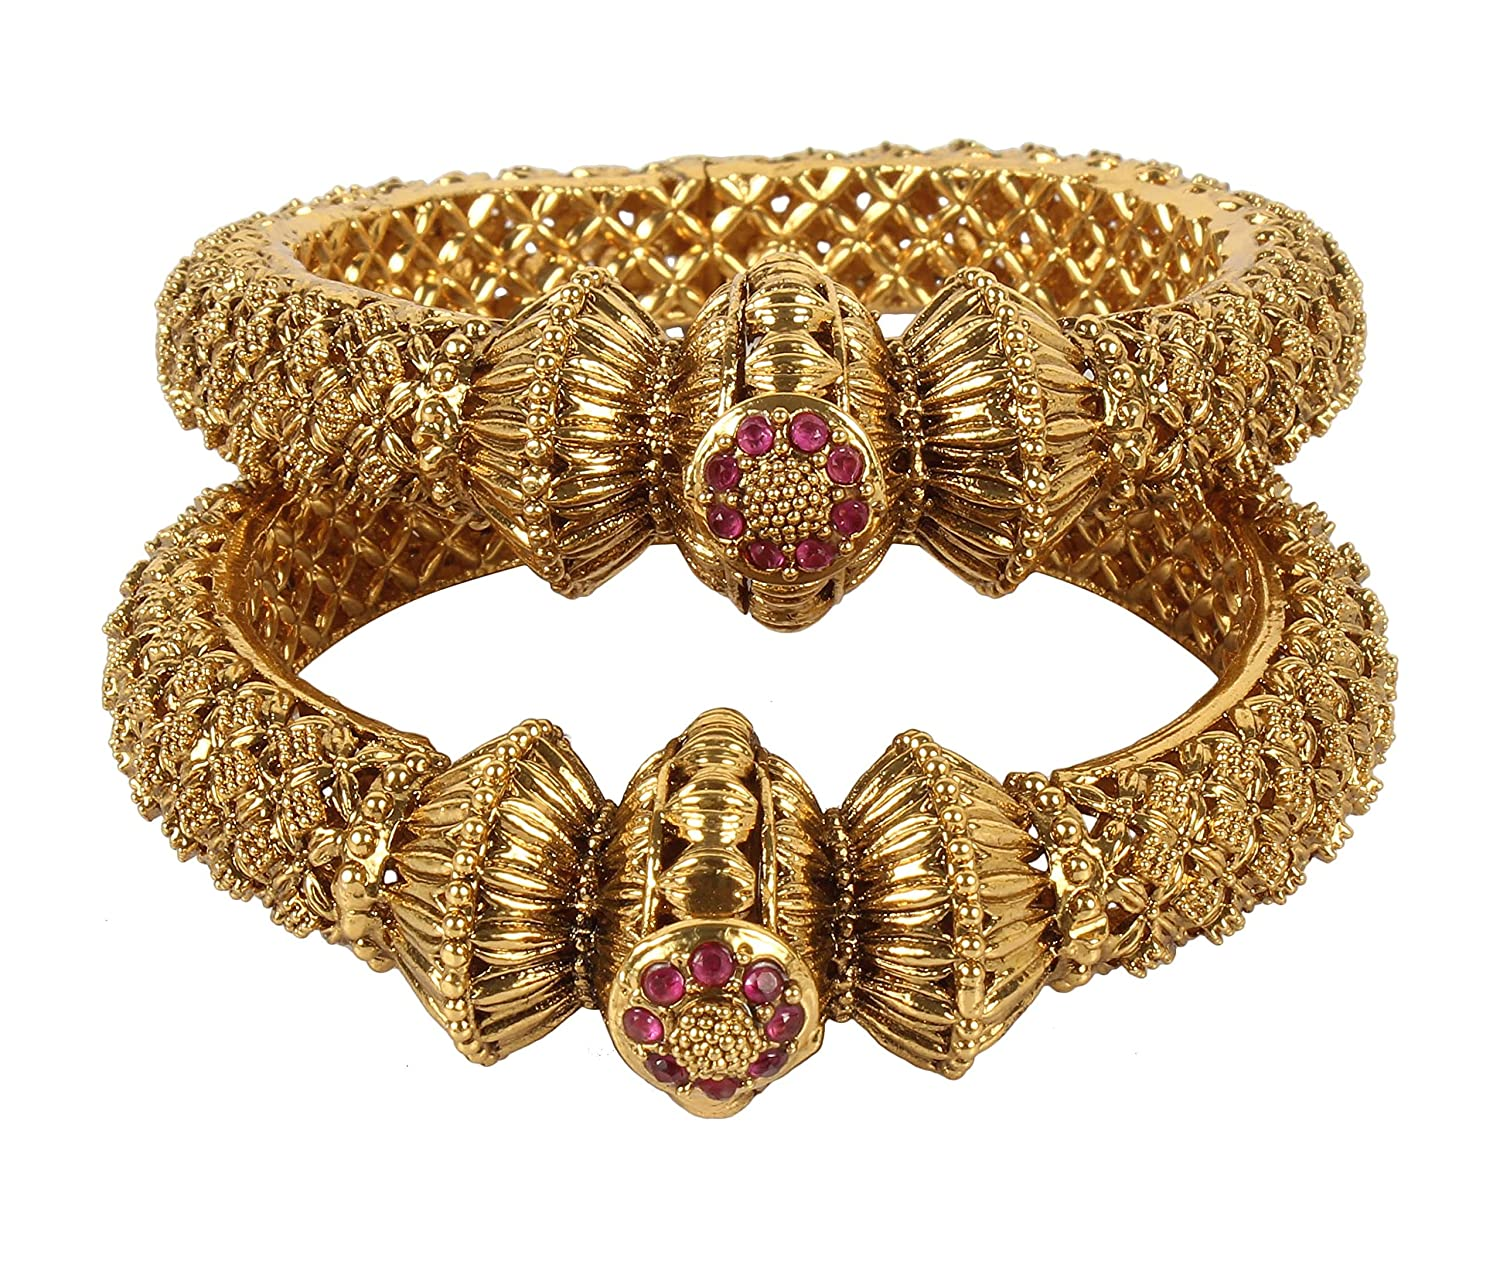 MUCH-MORE Exclusive American Bollywood Fashion Gold Plated Tone Indian Polki Traditional Bangles Bracelets Jewelry for Women